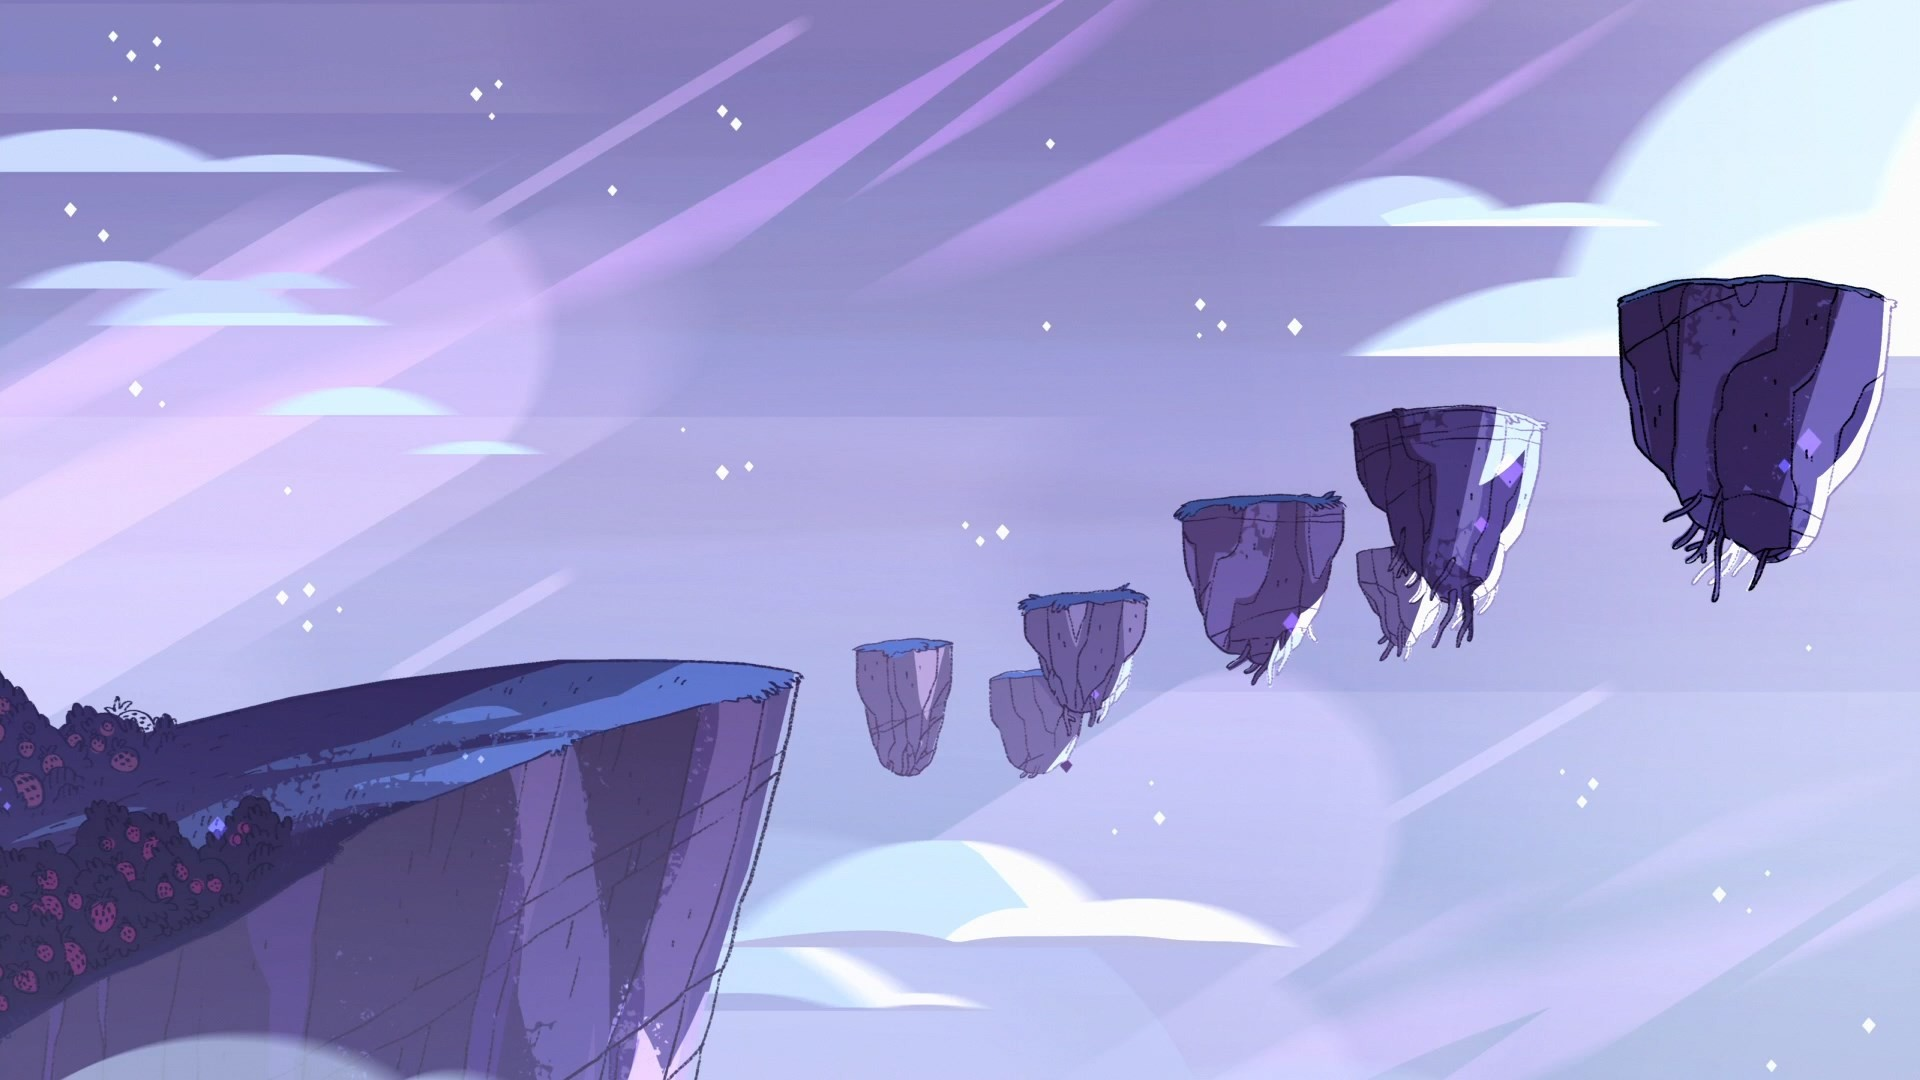 free screensaver wallpapers for steven universe